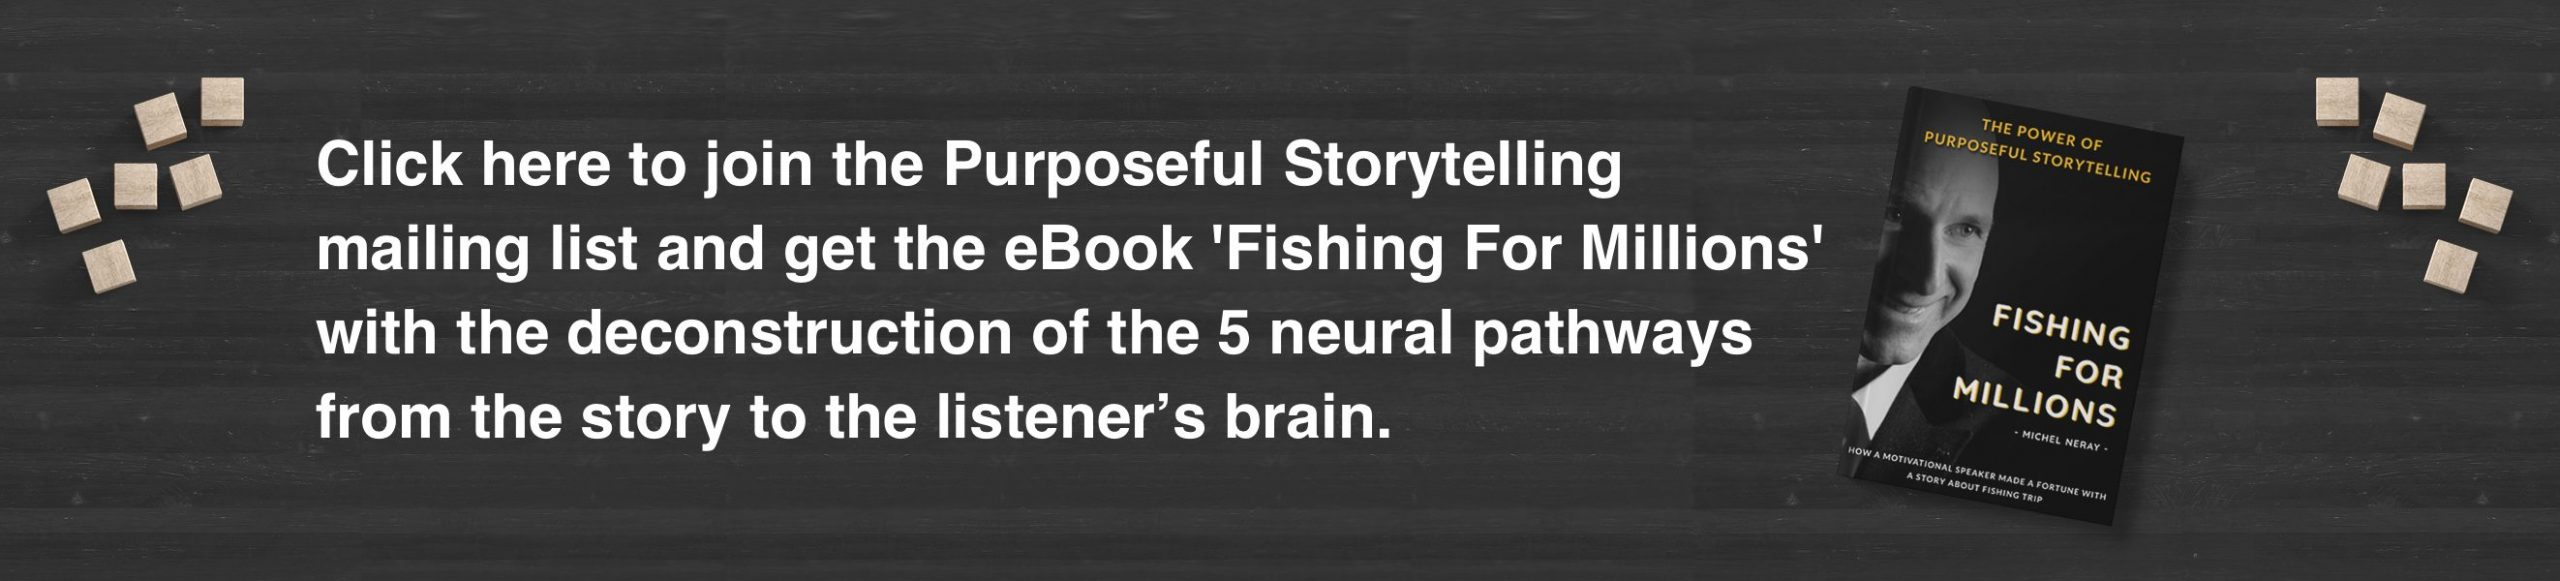 Click here to join the Purposeful Storytelling mailing list and receive the complete eBook, 'Fishing for Millions' with the deconstruction eBook with the deconstruction of the 5 neural pathways from your story to the listener's brain.